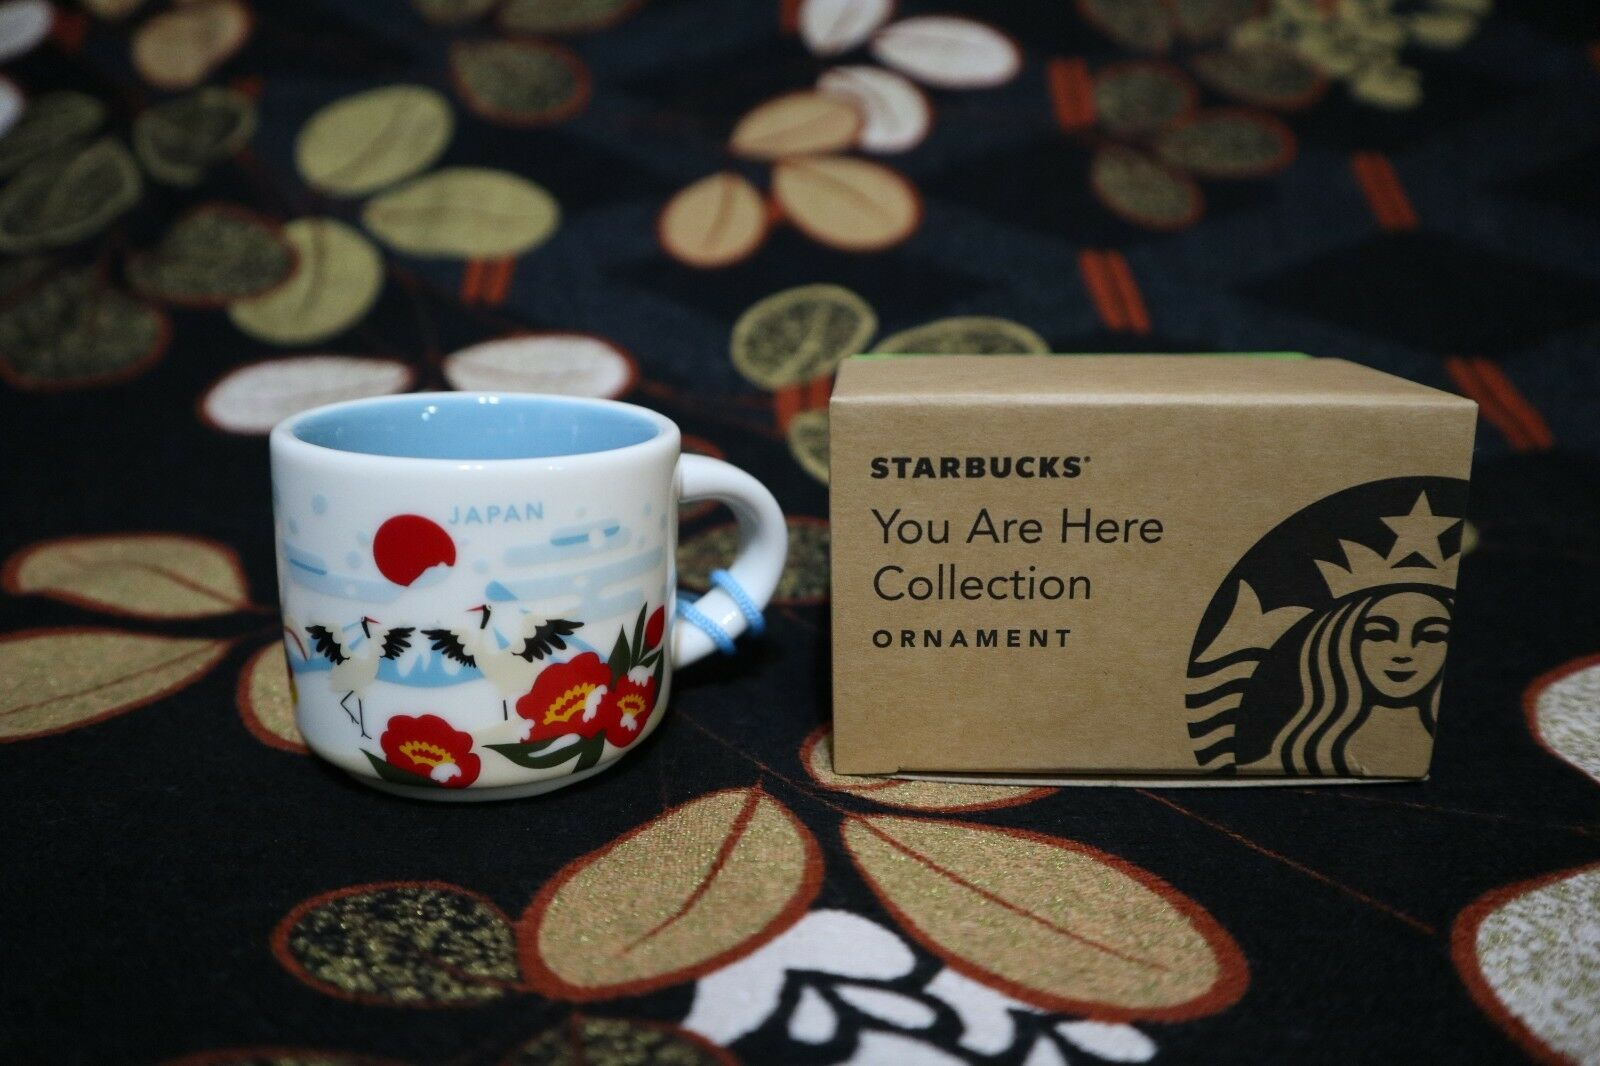 Starbucks Japan You Are Here Collection Winter Tumbler,Demitasse,Mug 14 oz,414 m